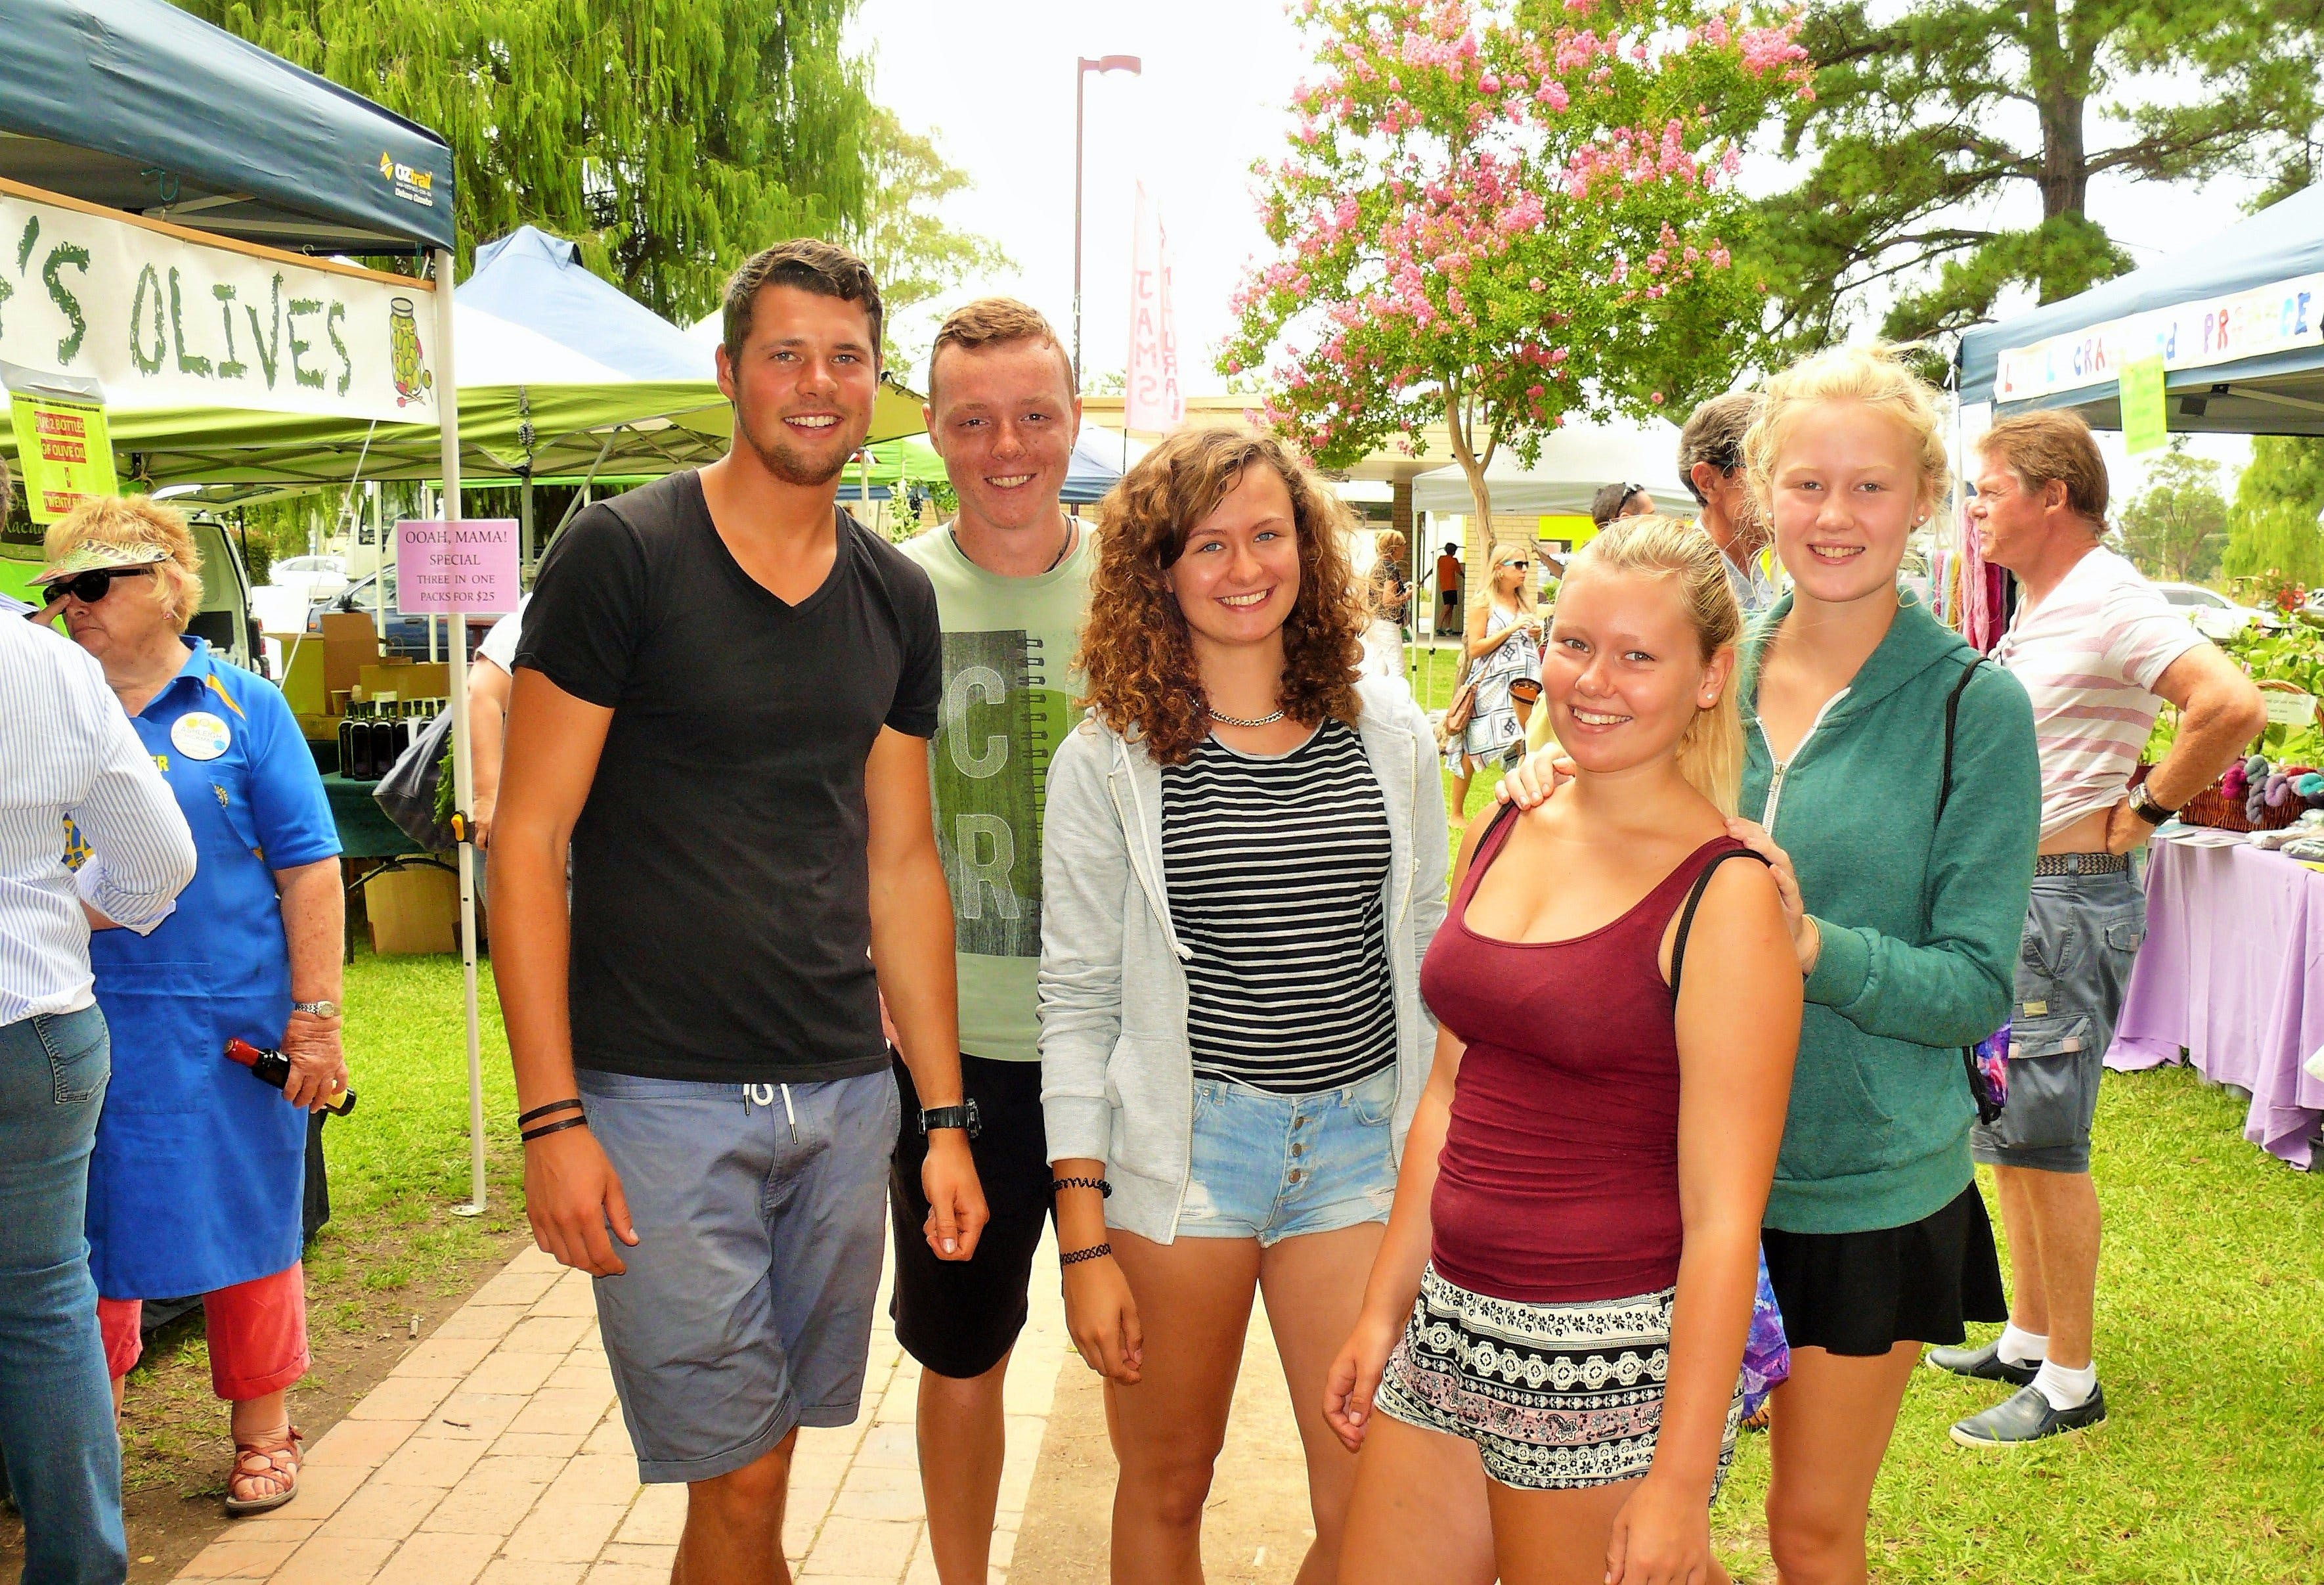 Gloucester Farmers Market - Accommodation Resorts